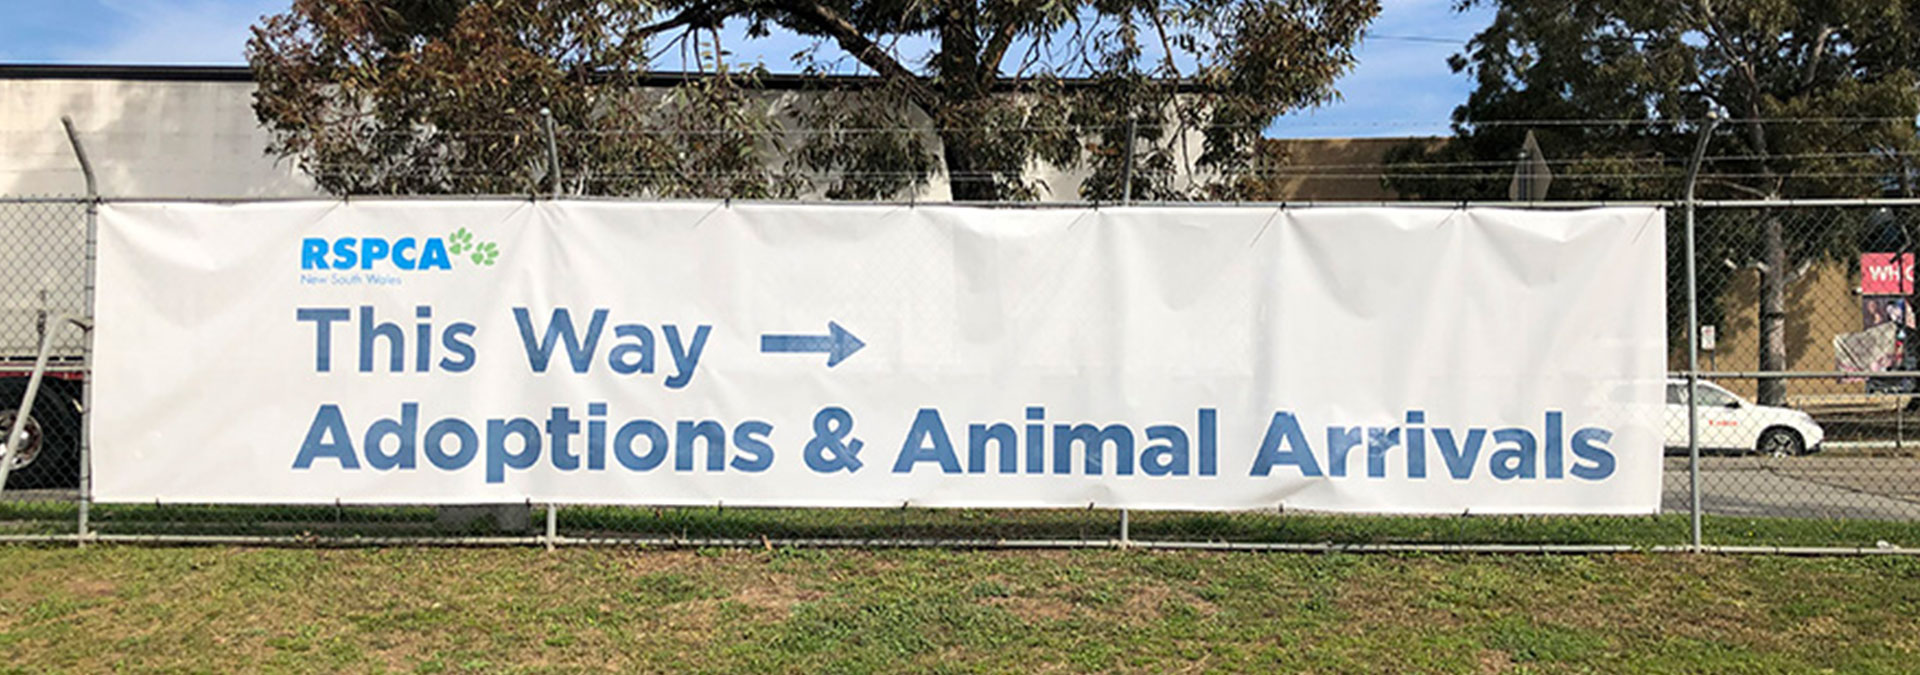 Large Fence Banners for RSPCA in Sydney